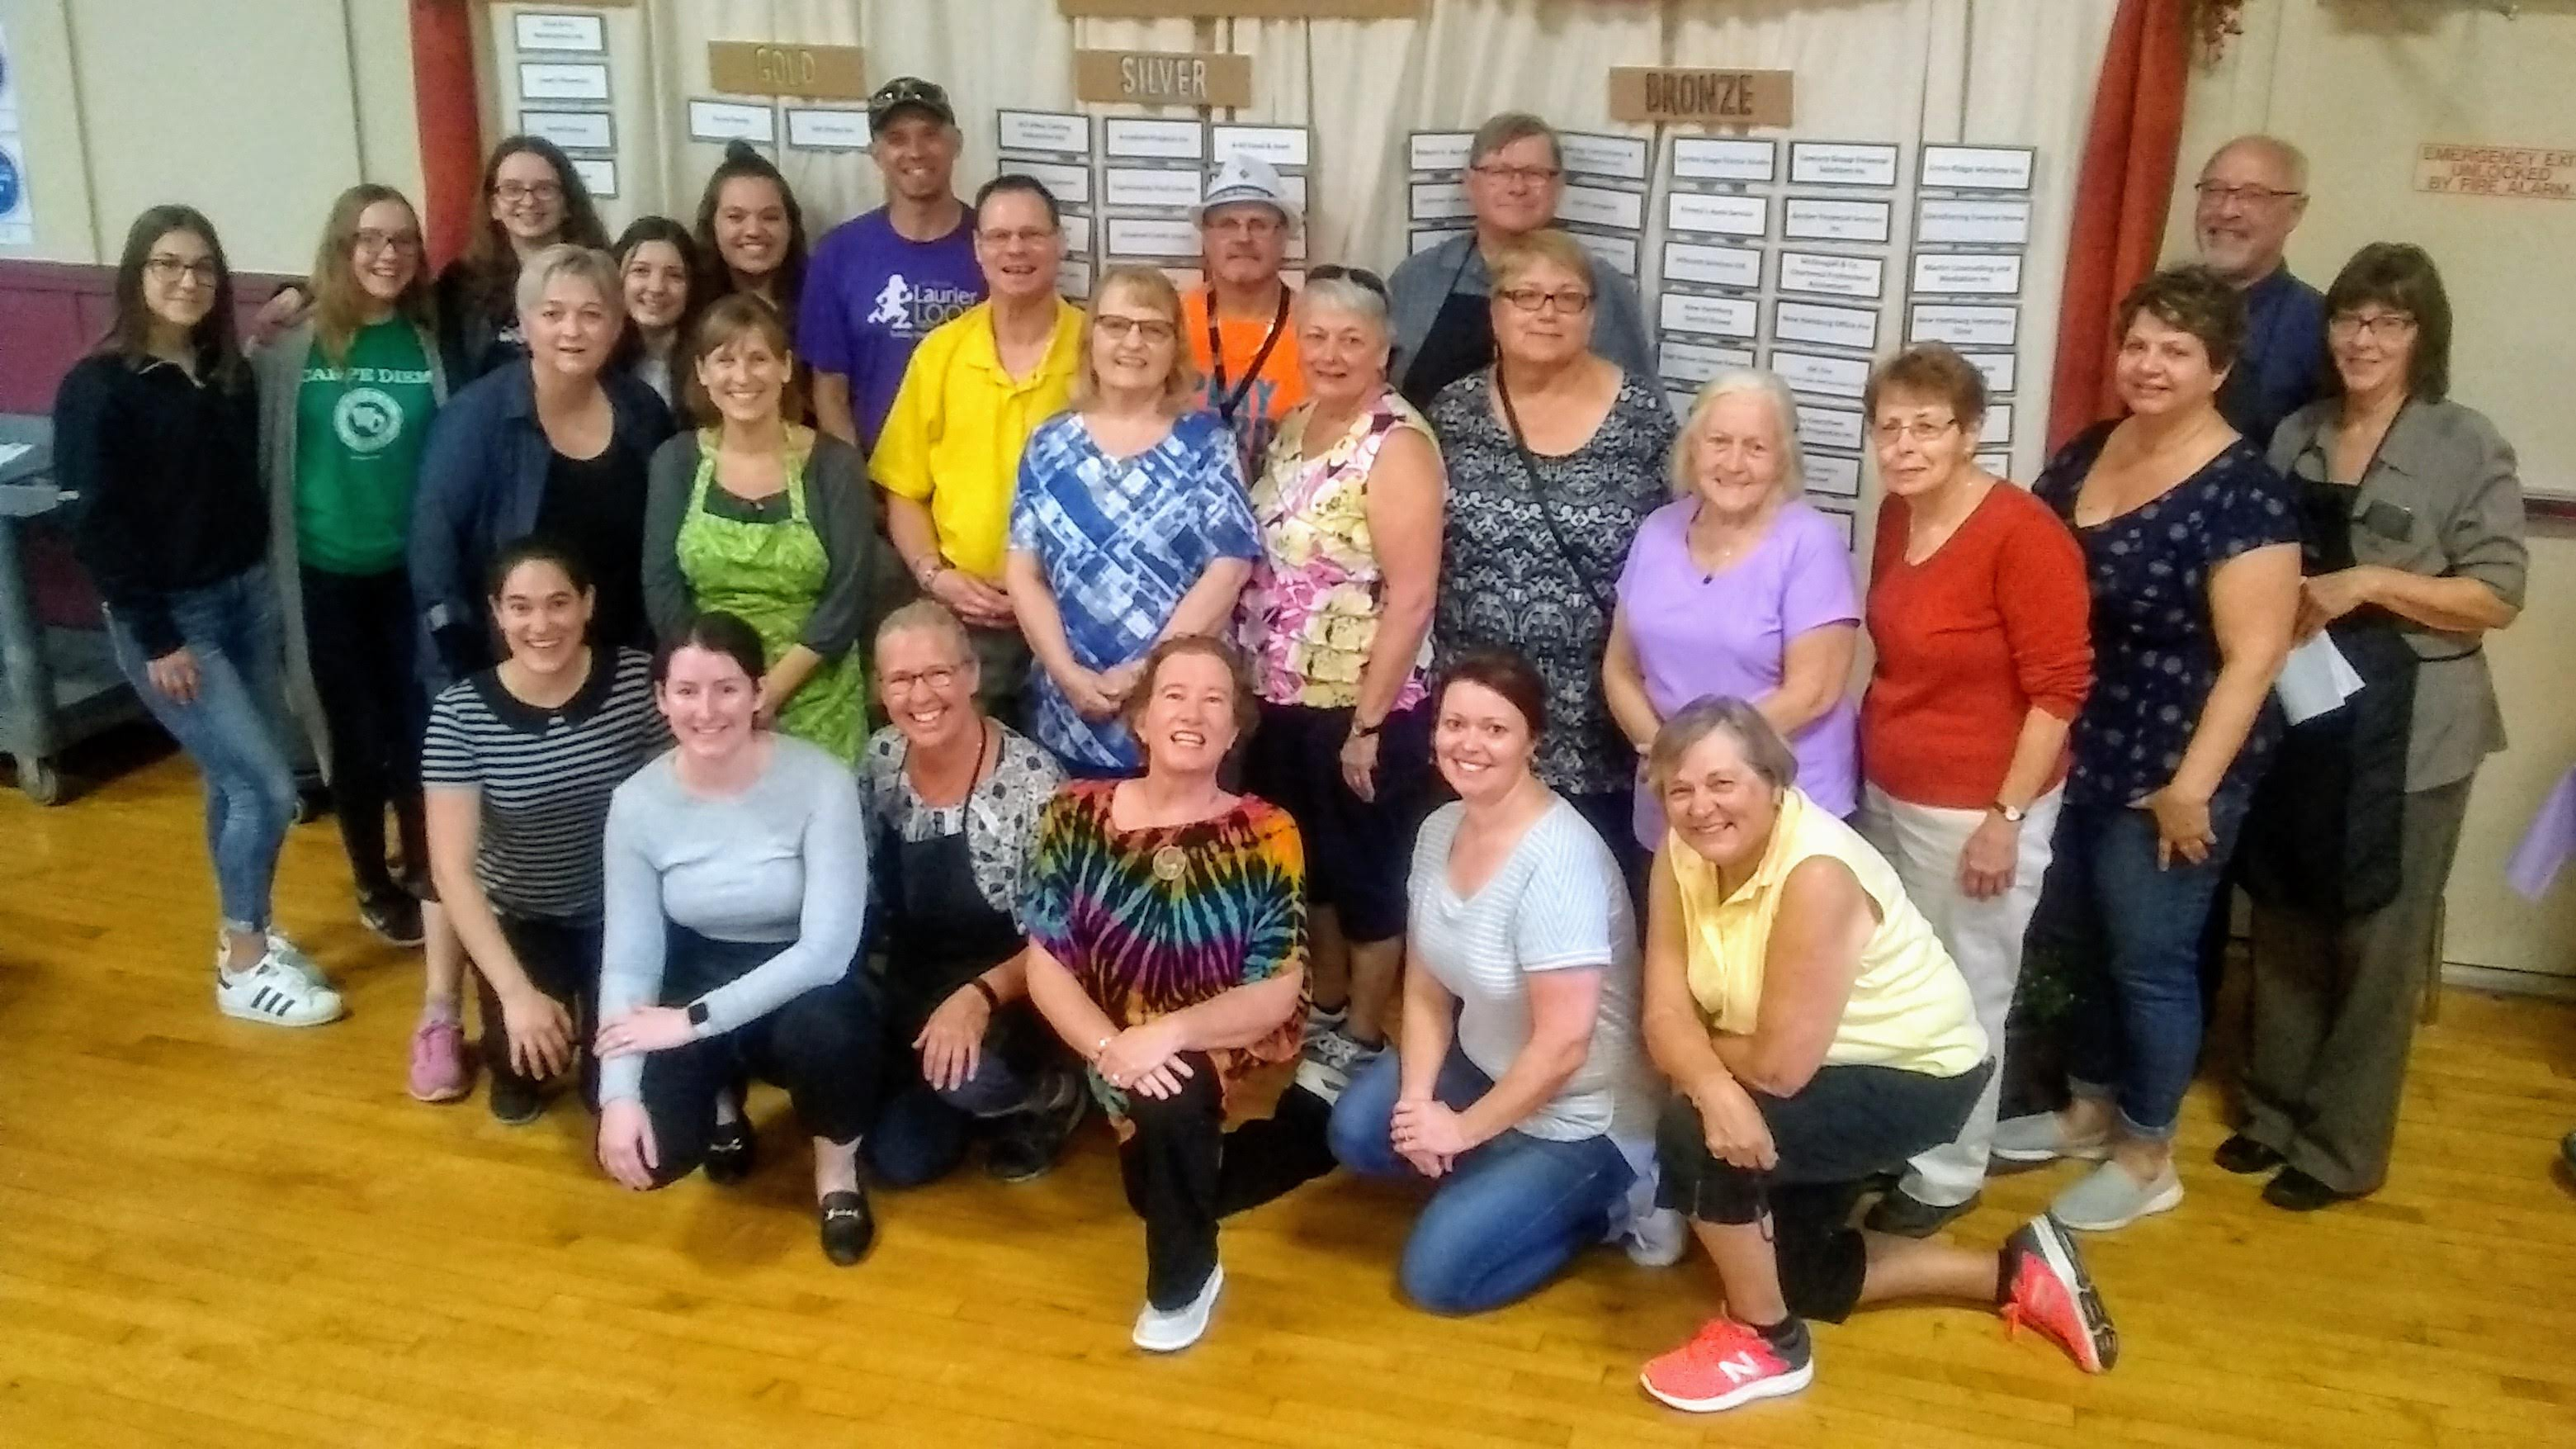 Volunteers for the annual Poor Boys Luncheon in 2019, organized by the Wilmot Family Resource Centre.